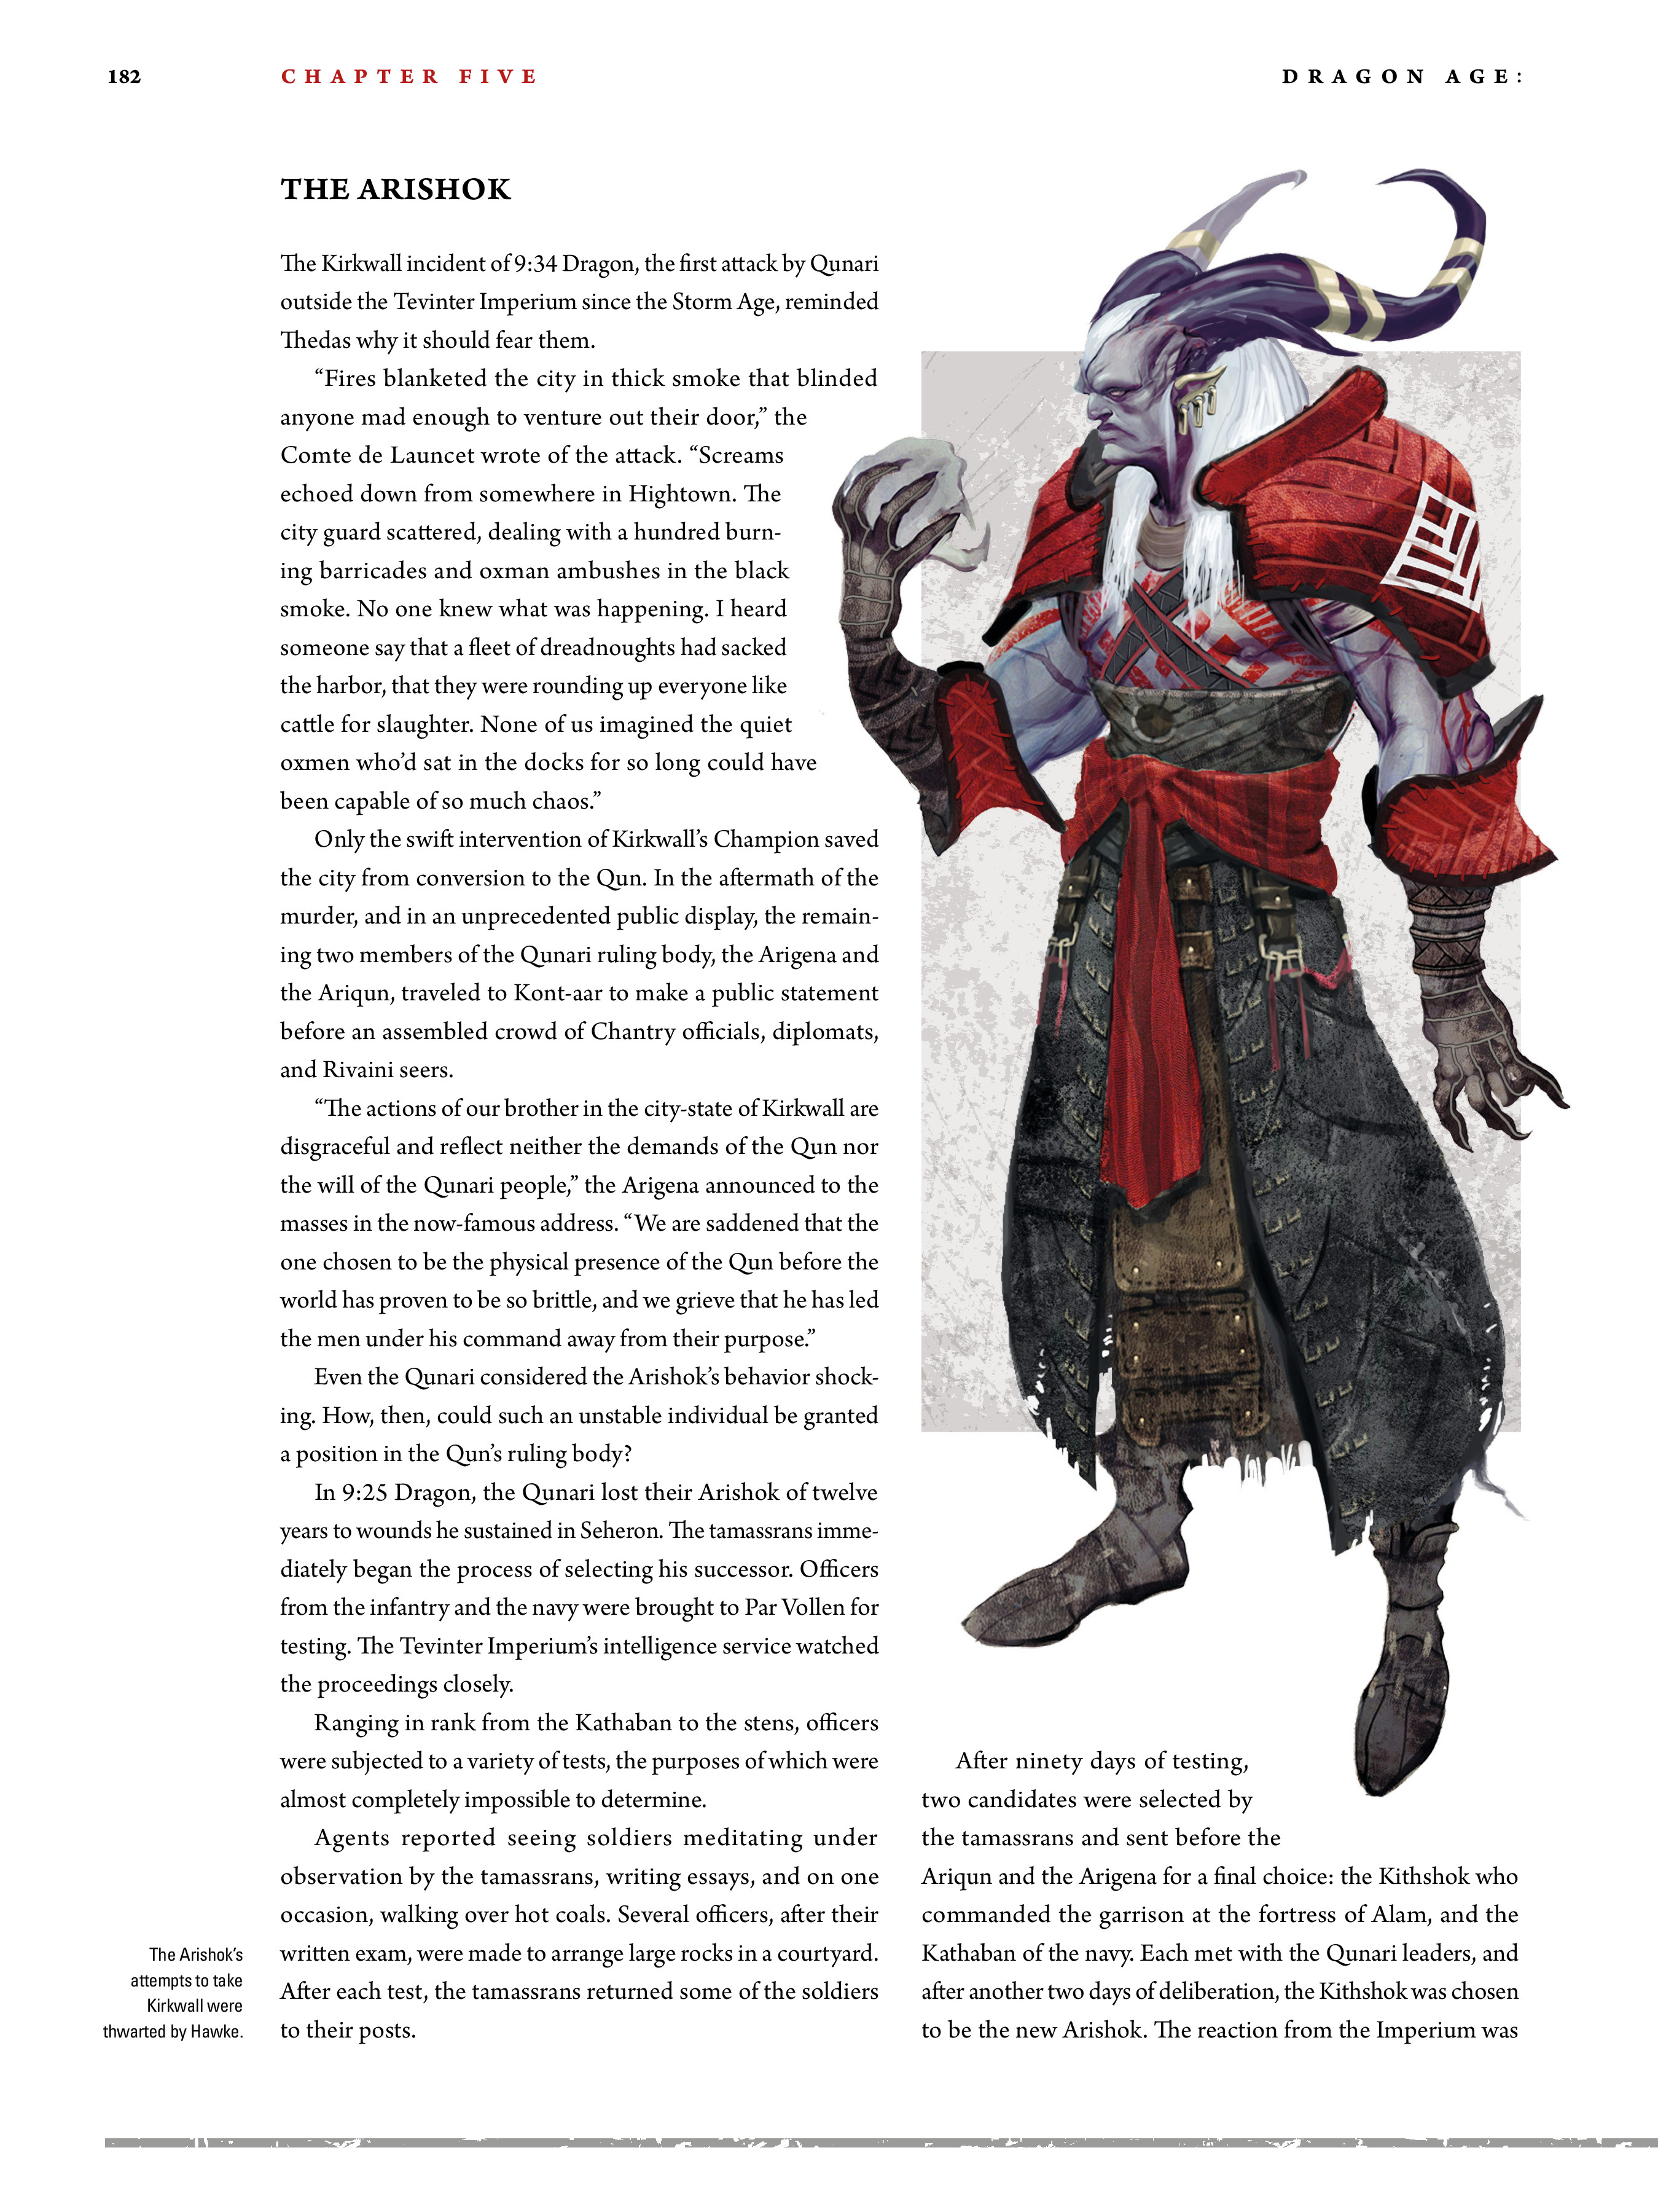 Read online Dragon Age: The World of Thedas comic -  Issue # TPB 2 - 177